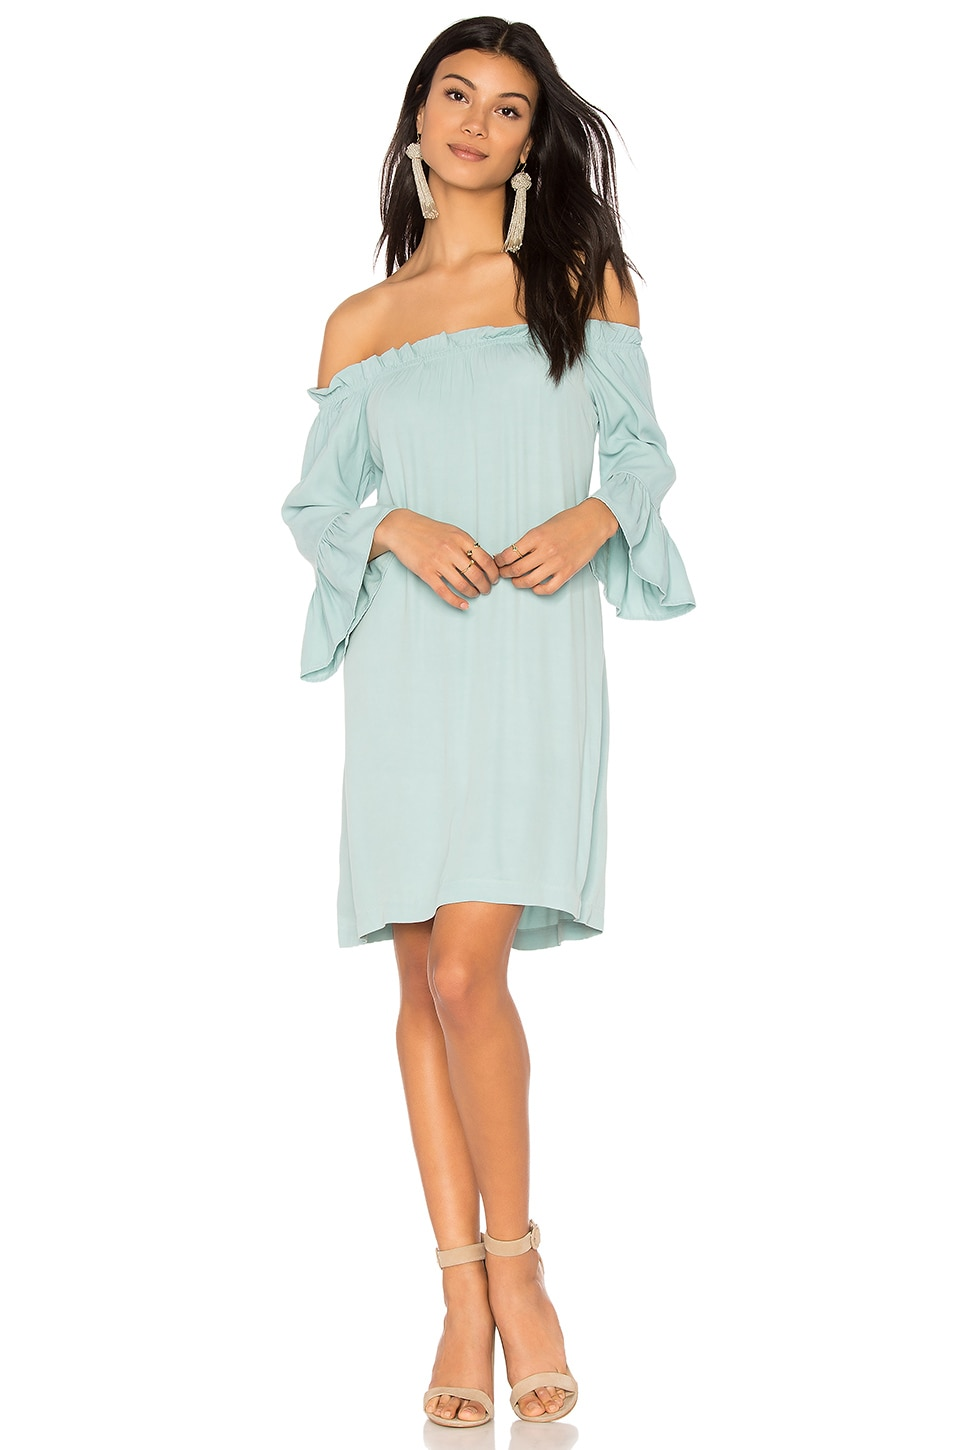 Abby Dress by maven west